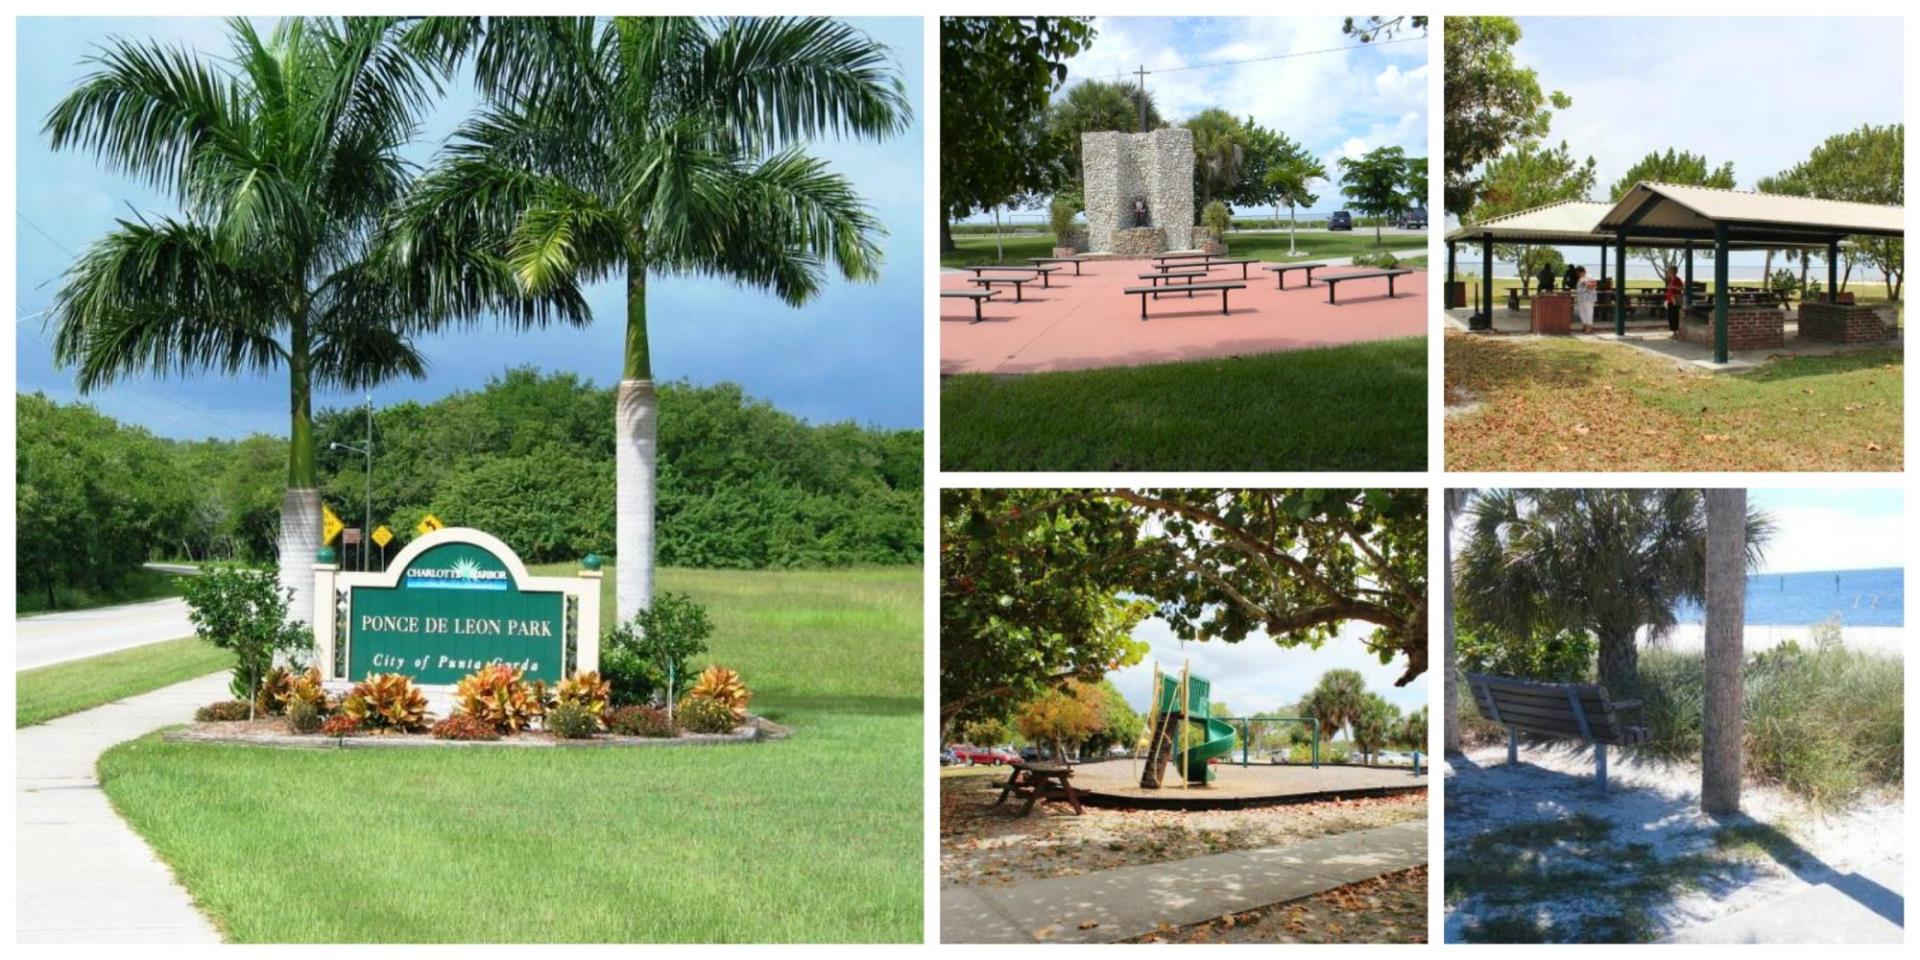 PicMonkey Collage - Ponce 2